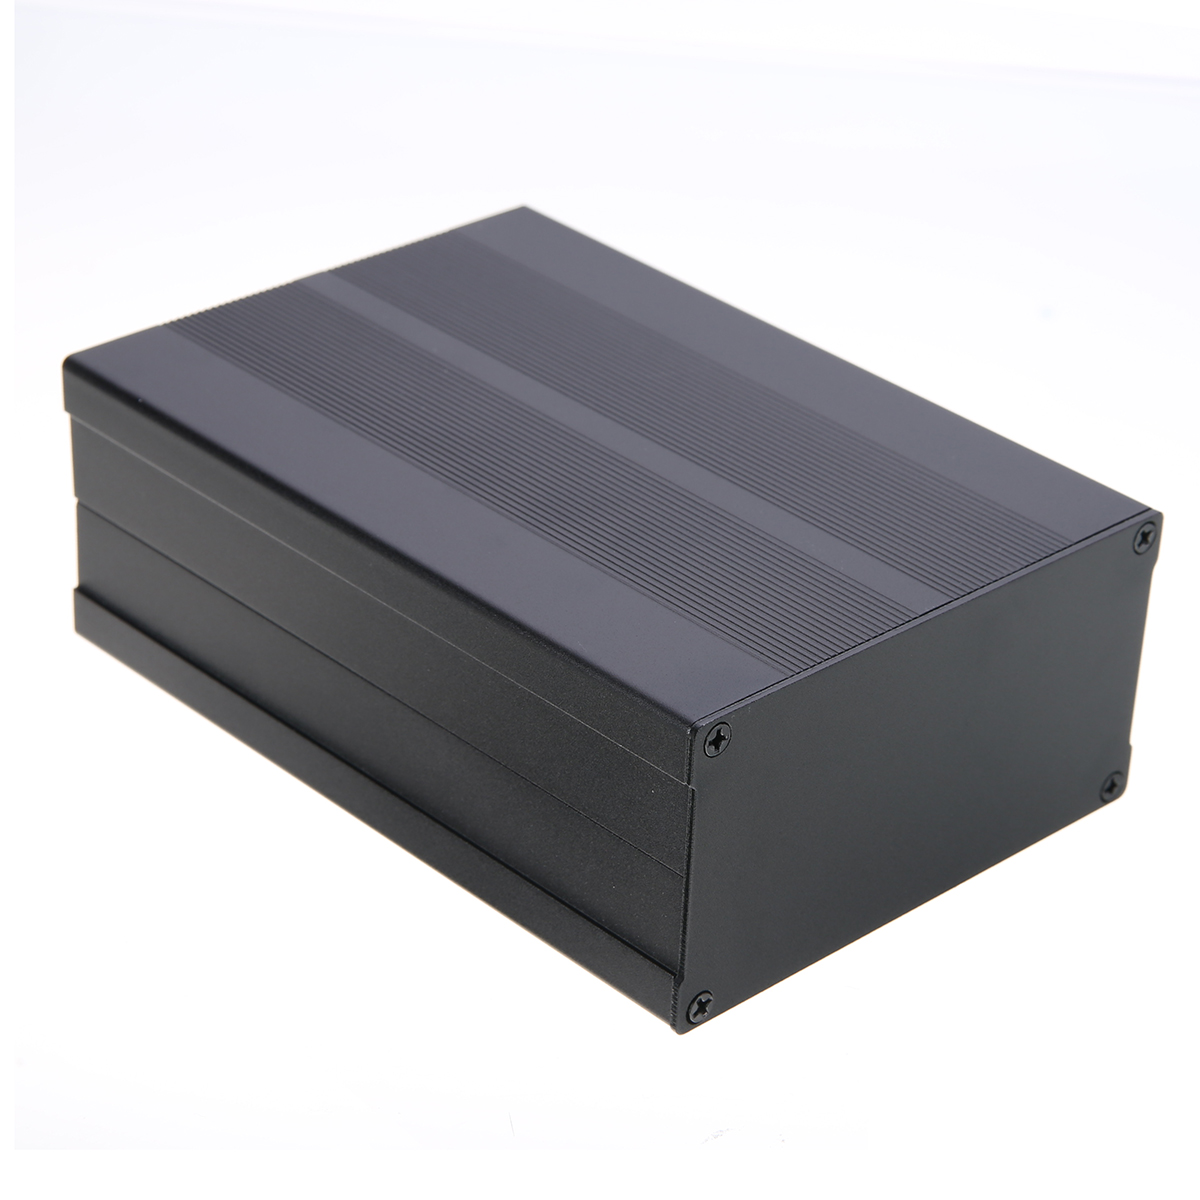 Black Electronic Project Case Aluminum Circuit Board Enclosure Box 150x105x55mm with Screws купить в Москве 2019